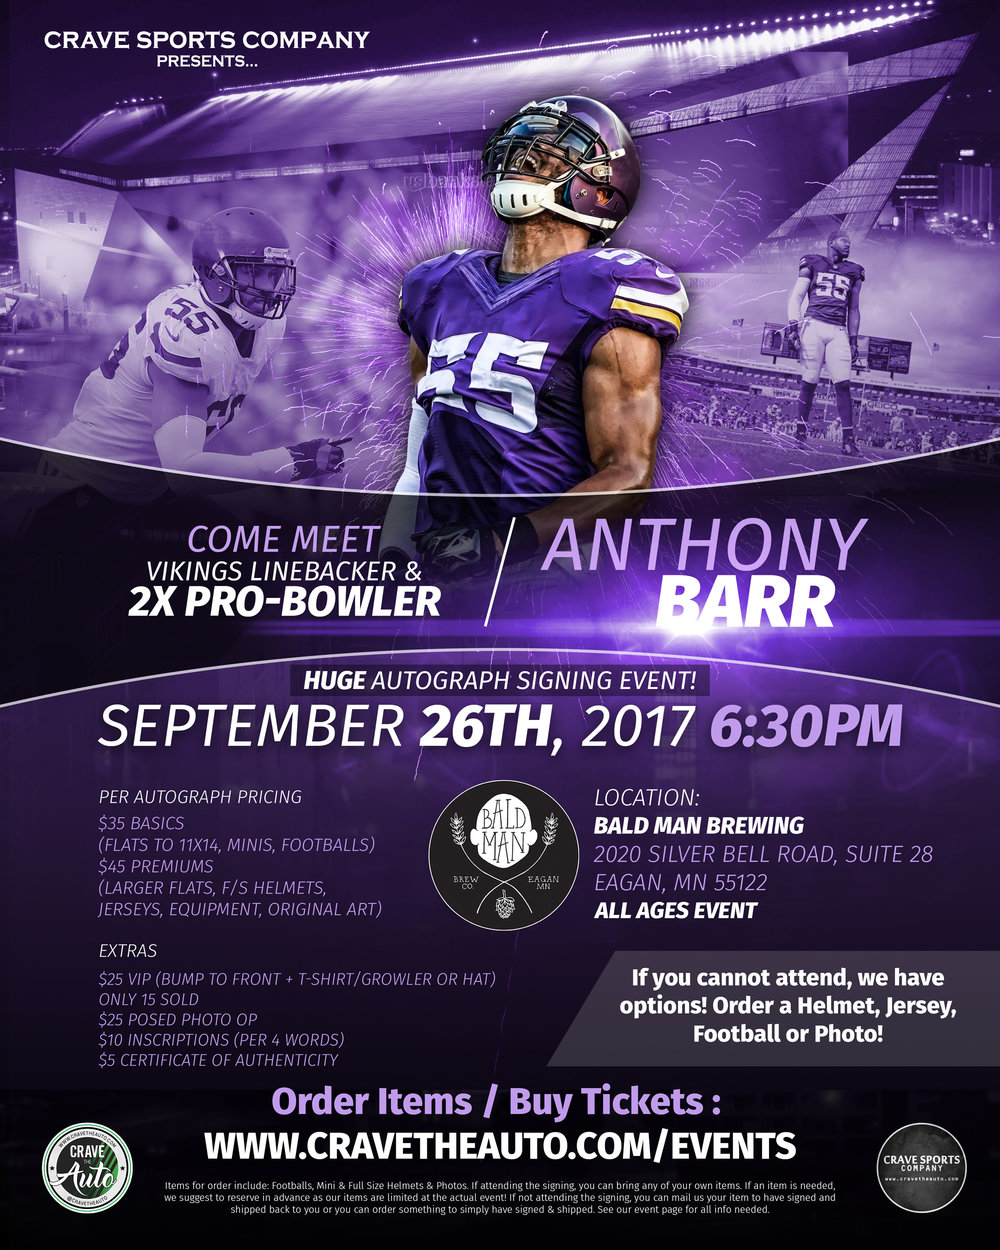 barr autograph signing